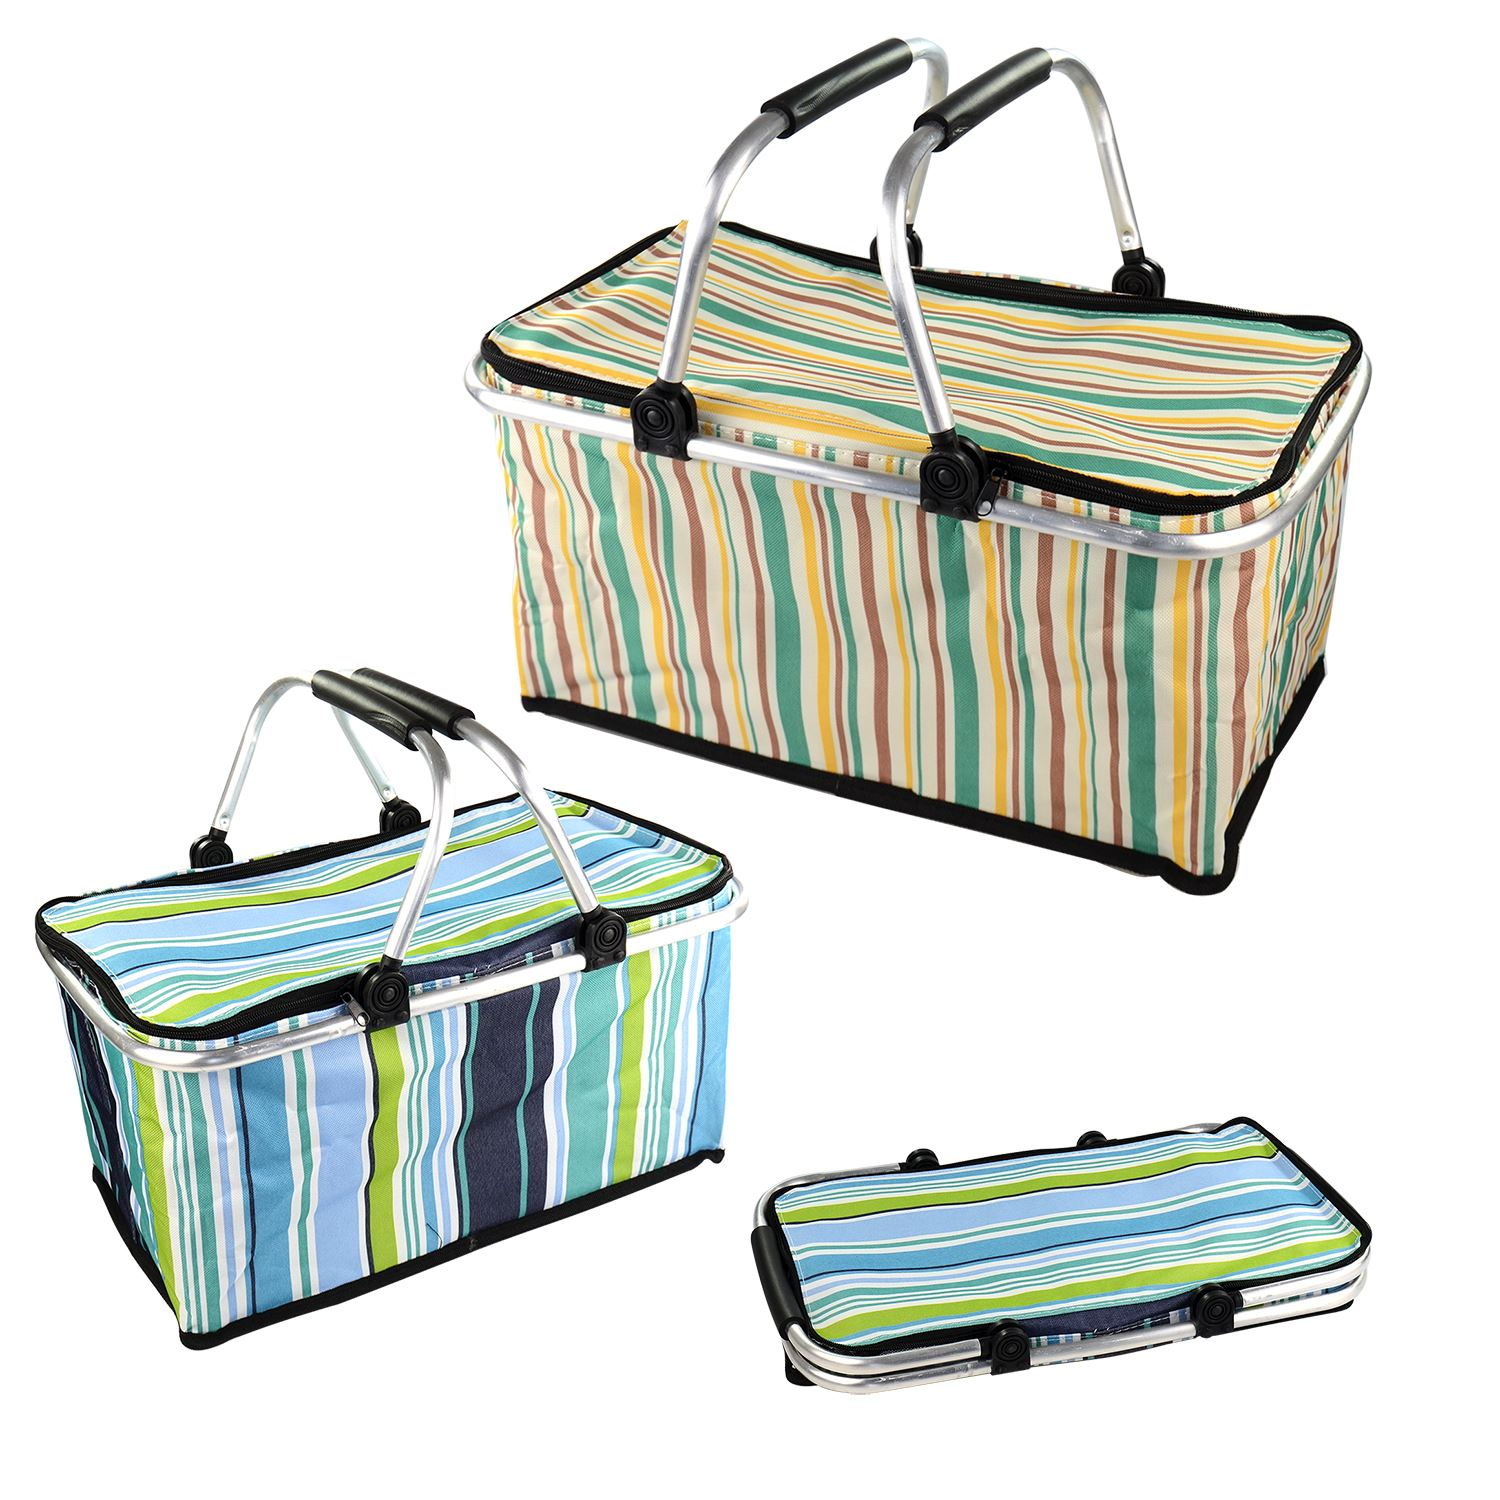 Collapsible Insulated Picnic Basket For 4 : Folding picnic basket hamper insulated camping cooler